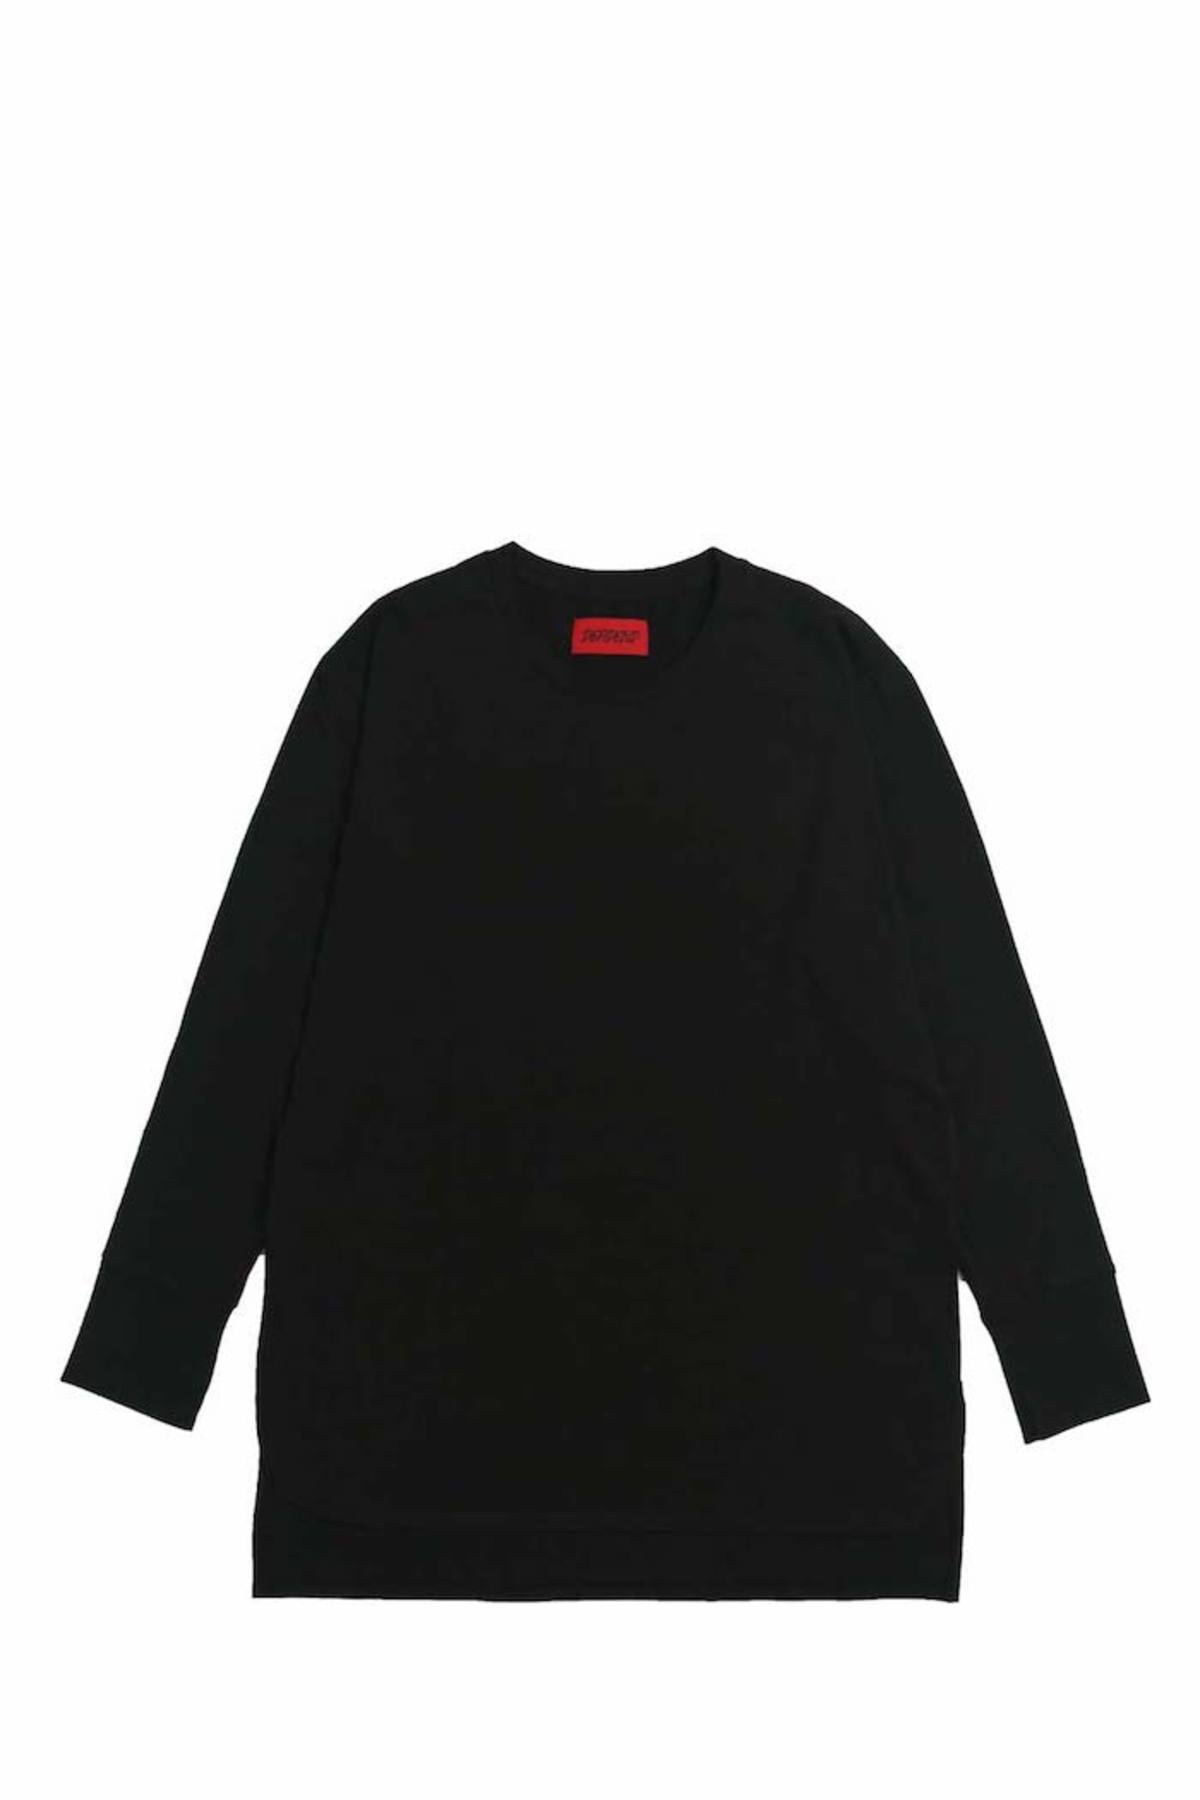 BLACK SET IN RAGLAN SLEEVE V2